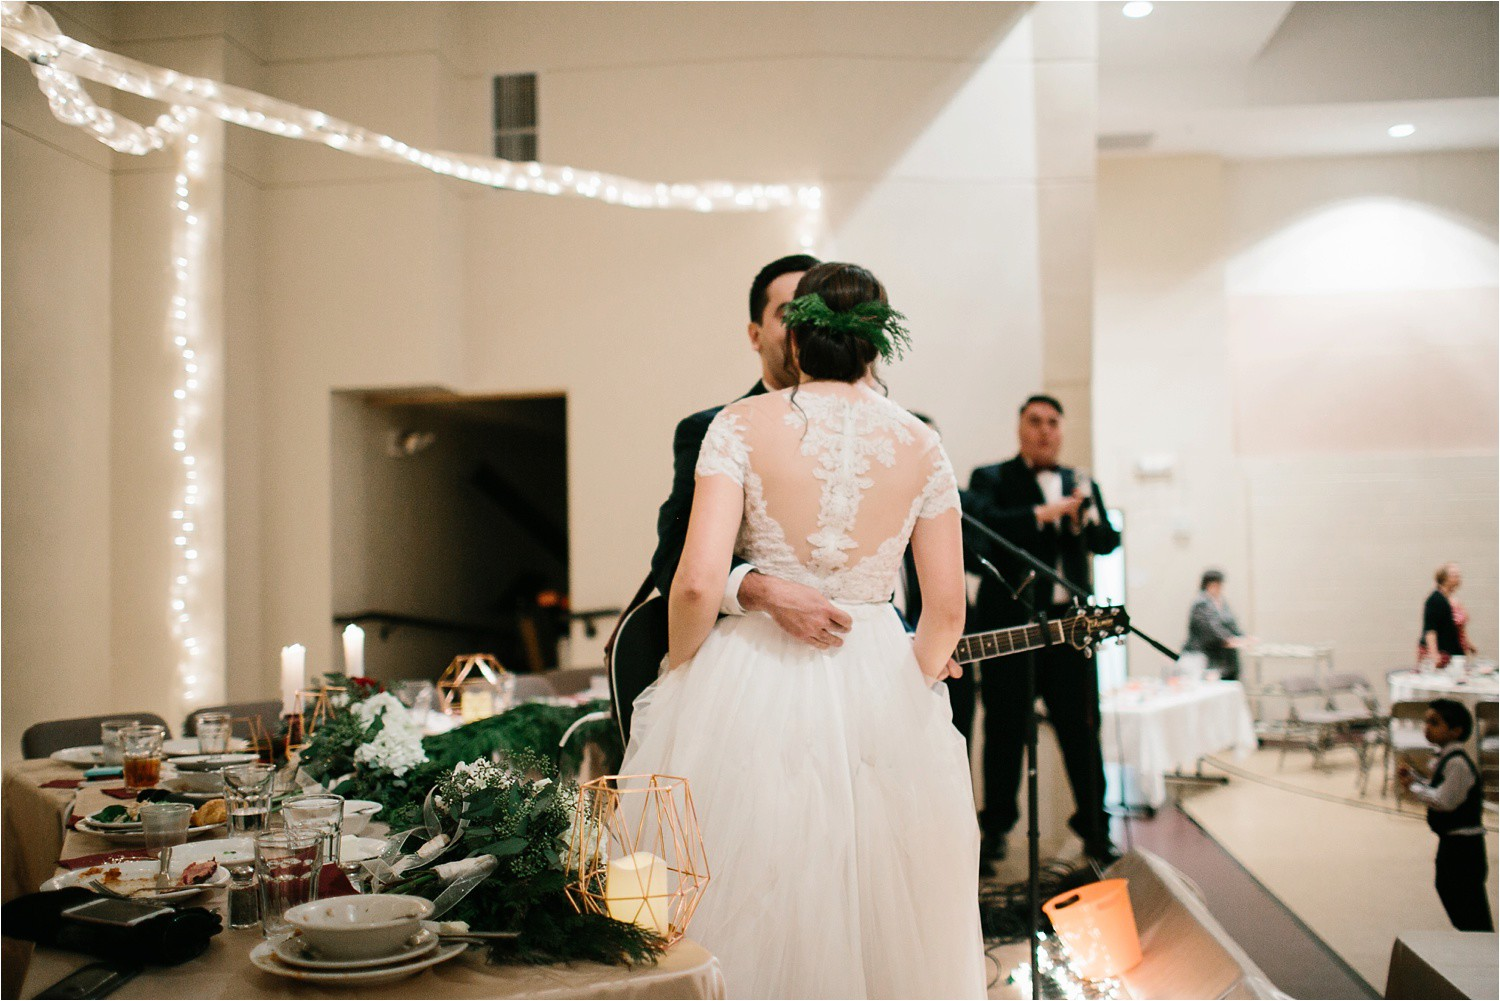 Alaina + Josh __ a wintertime wedding in Houston, TX with Christmas accents and a BHLDN dress by North Texas Wedding Photographer Rachel Meagan Photography _ 85